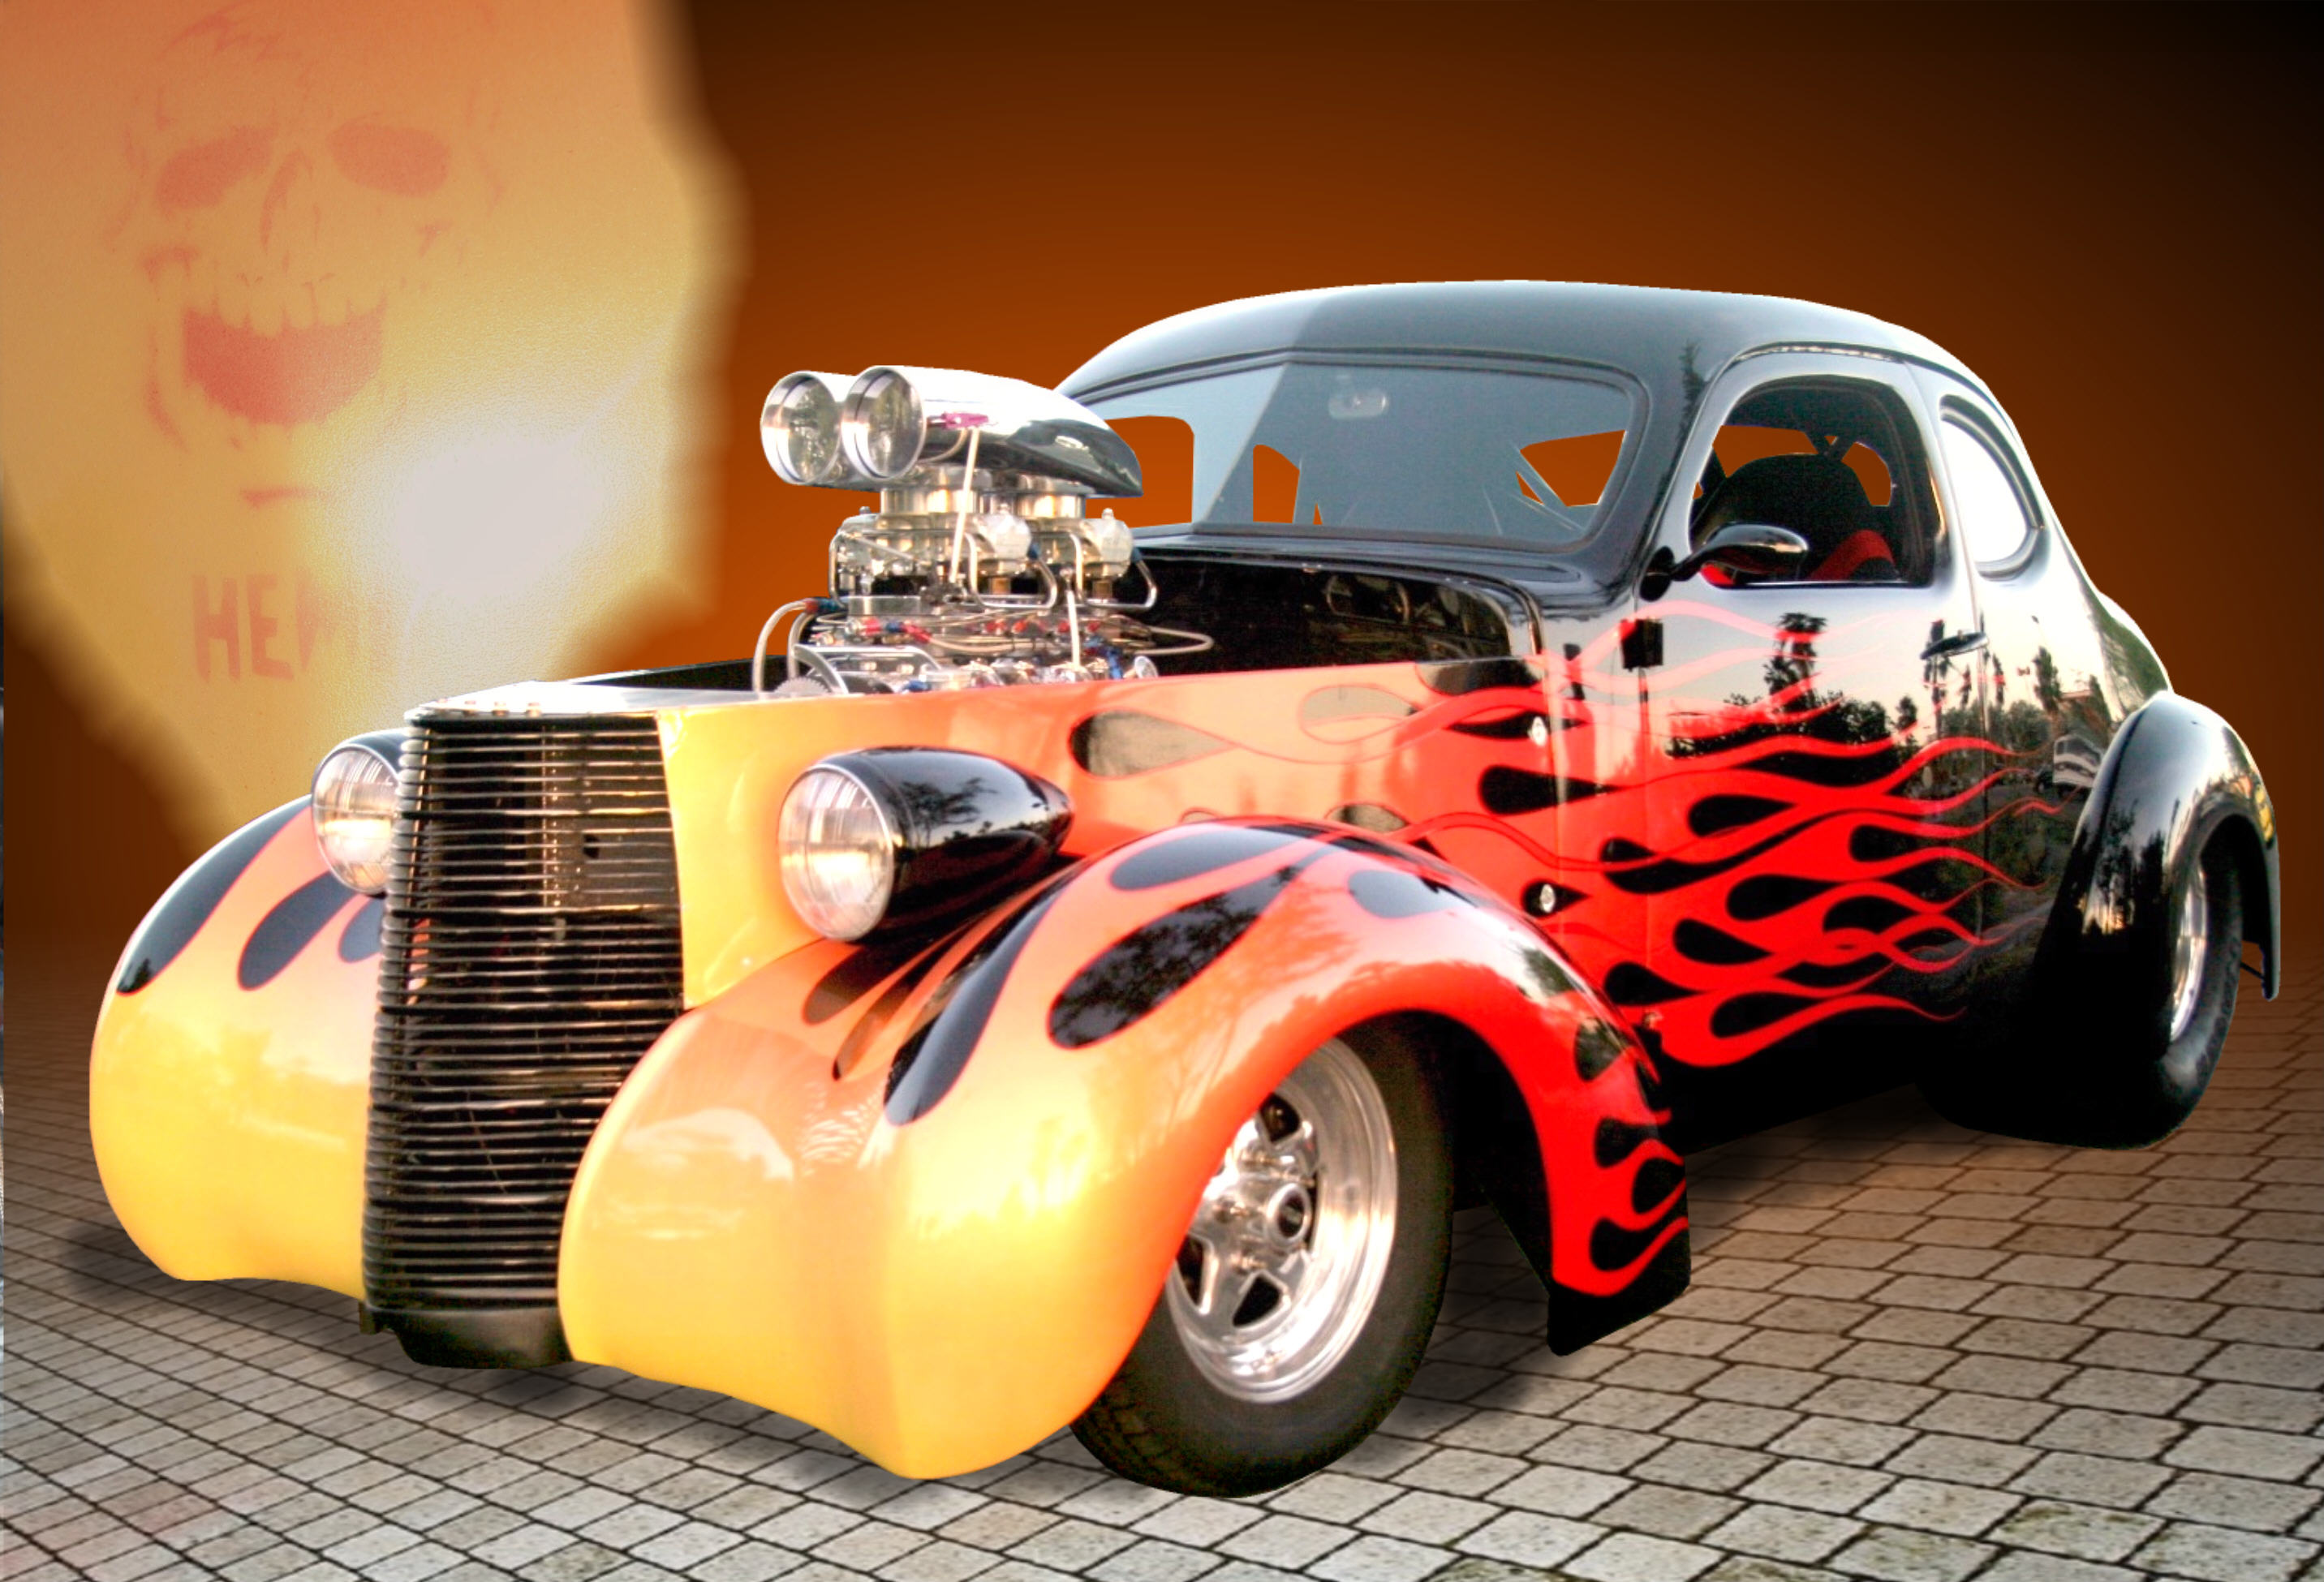 576 hot rod wallpapers hot rod backgrounds wallpaper abyss View 2864x1950